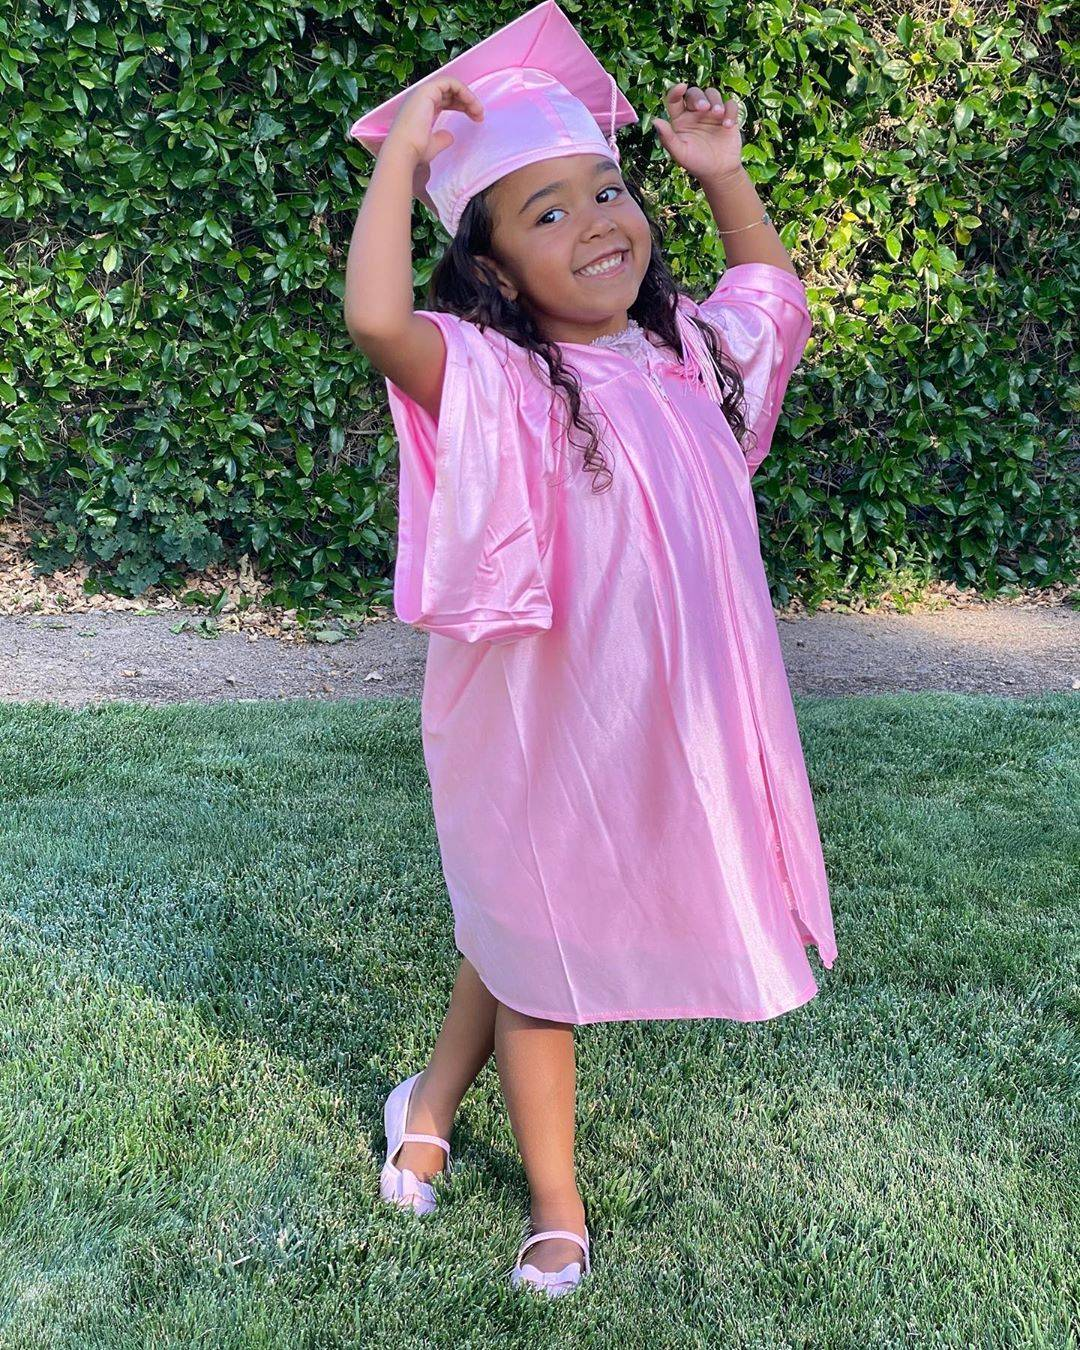 """Tamera Mowry-Housley's Daughter, Ariah - Tamera Mowry-Housley's daughterAriahwas all smiles as she celebrated her Pre-K graduation, surrounded by friends.Although the 4-year-old cutie was unable to physically hug her fellow classmates, due to social distancing practices, the cutie seemed to be in good spirits as she proudly posed for mommy in her pink cap and gown.""""Graduating from Pre-k was something Ariah was so excited about. Obviously because of Covid-19 graduation was cancelled,"""" Tamera captioned the photo. """"However we created a little social distancing ceremony for her and friends. So proud of this little girl.""""Too precious! Congratulations, Ariah! Tamera Mowry-Housley/Instagram"""